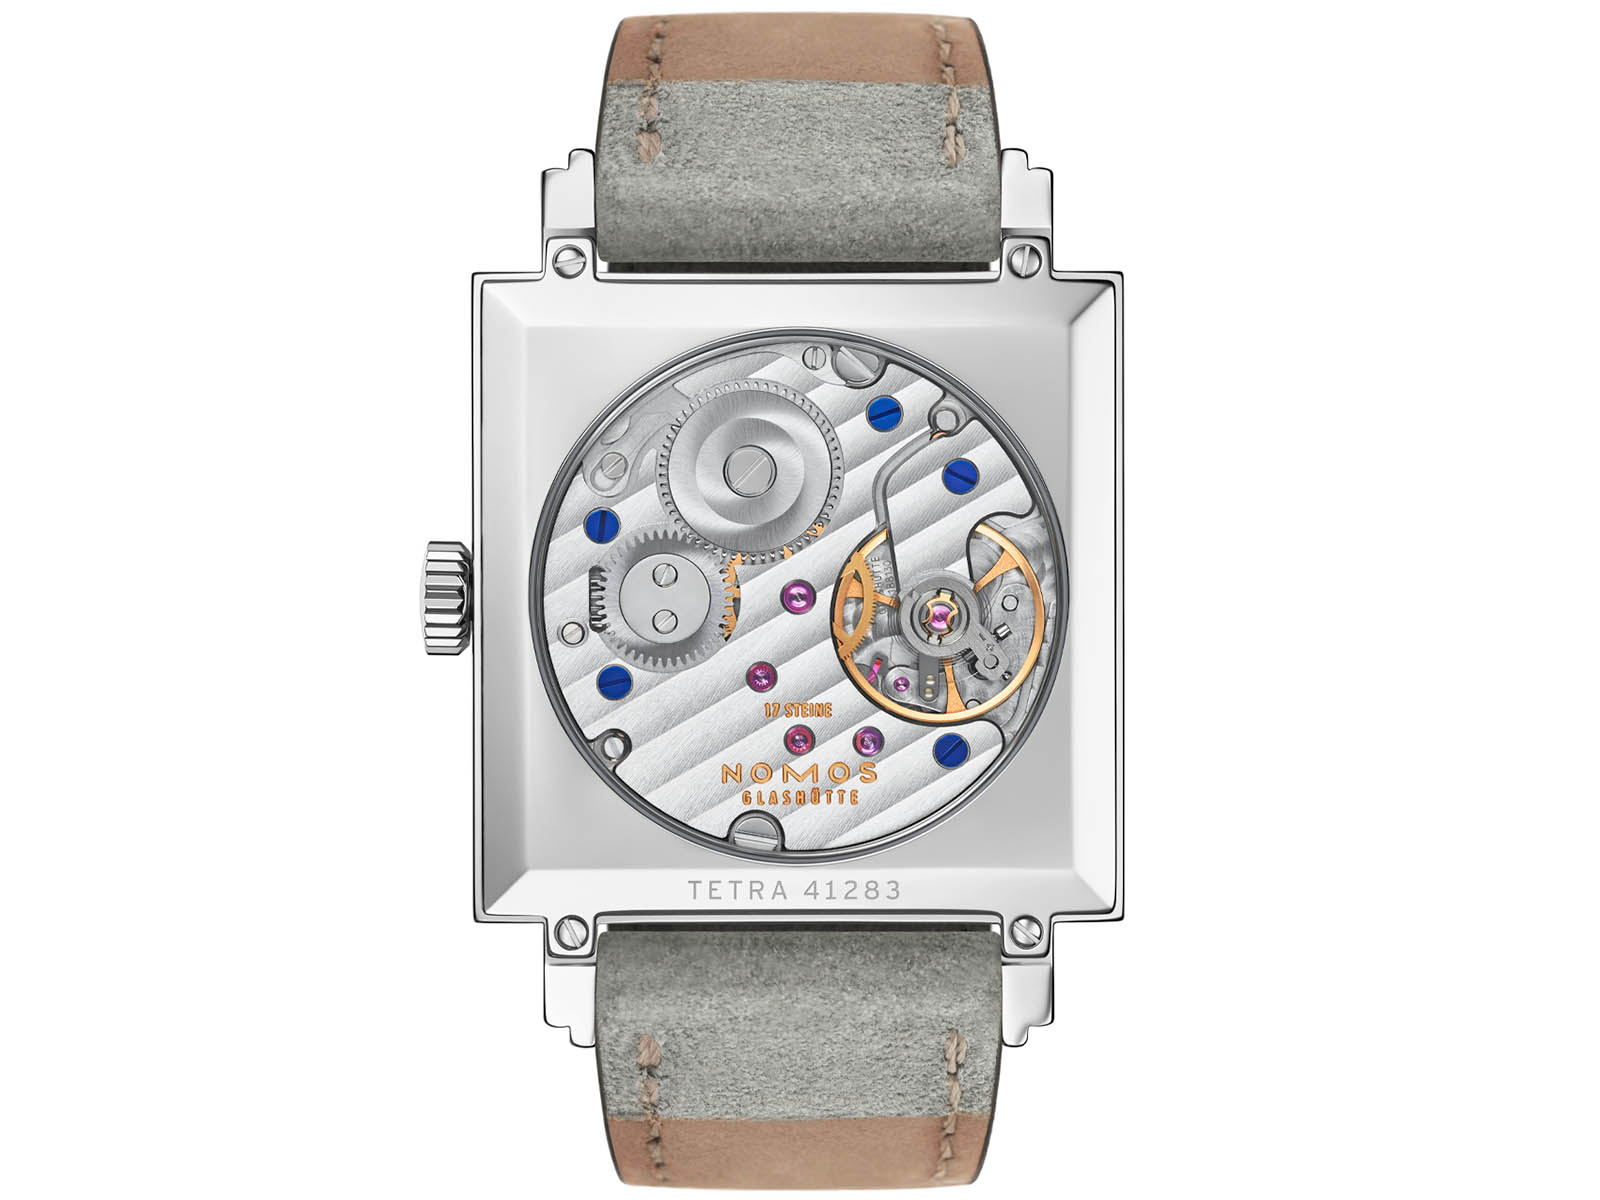 nomos-glashutte-tetra-symphony-collection-8.jpg